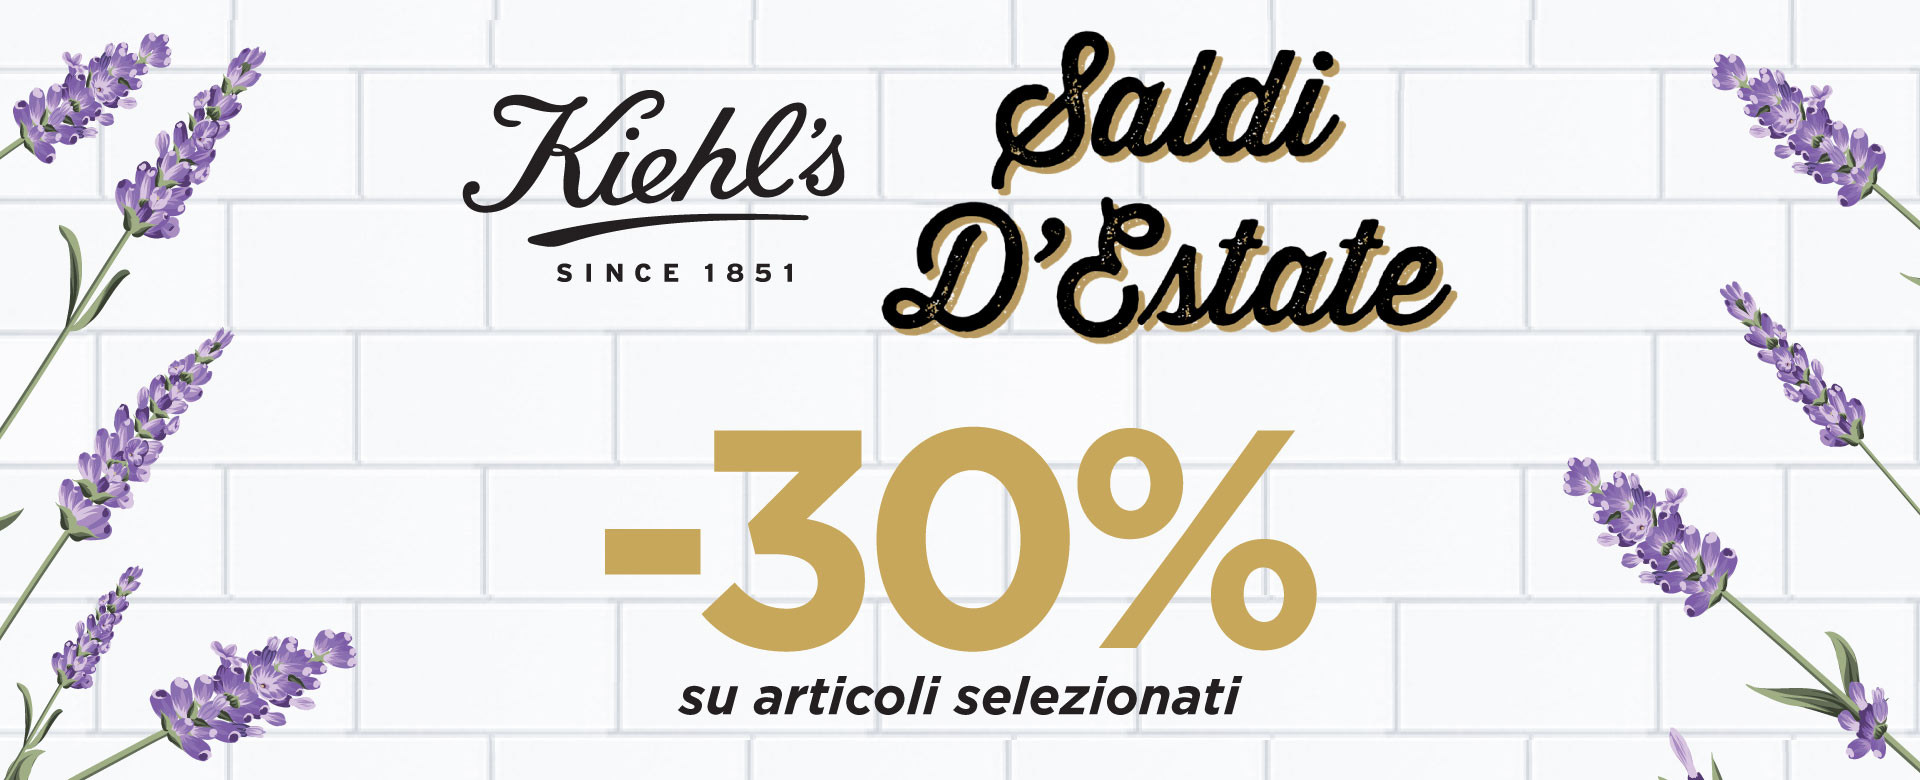 Kiehl's Saldi d'Estate